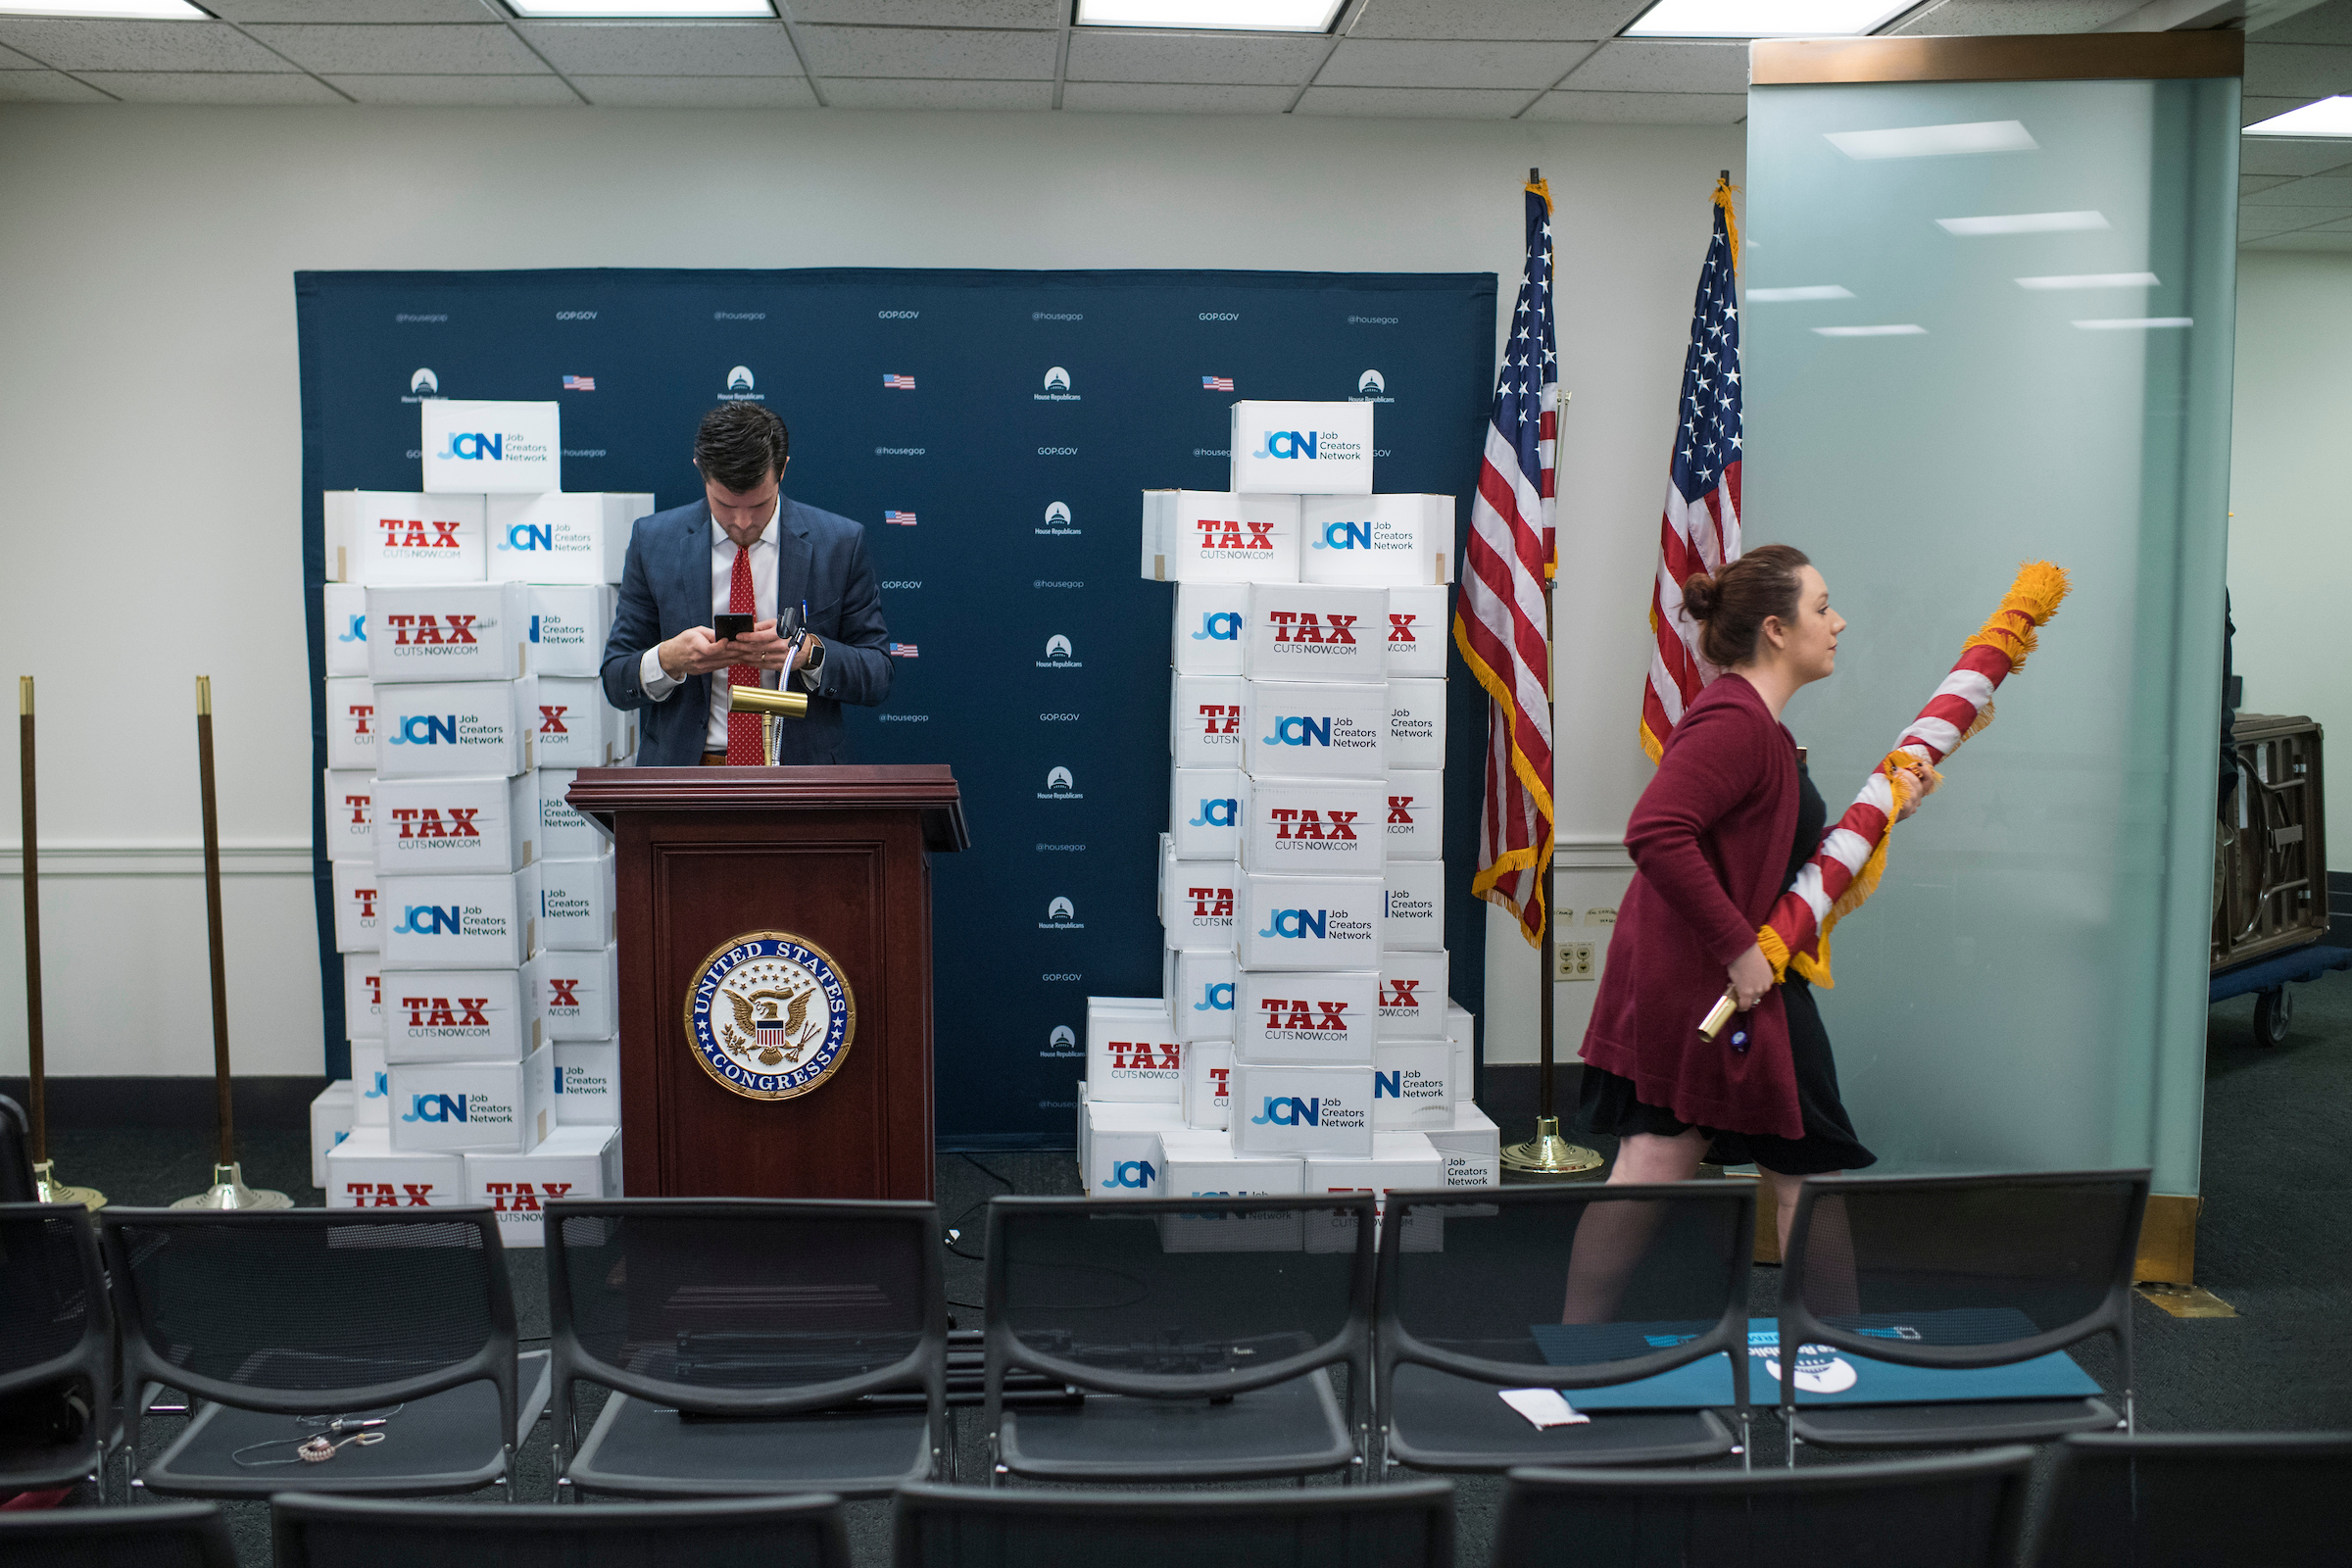 UNITED STATES - NOVEMBER 14: Aides break down a news conference conducted by Speaker Paul Ryan, R-Wis., and GOP leaders, featuring boxes of tax reform petitions after a meeting of the House Republican Conference in the Capitol on November 14, 2017. (Photo By Tom Williams/CQ Roll Call)